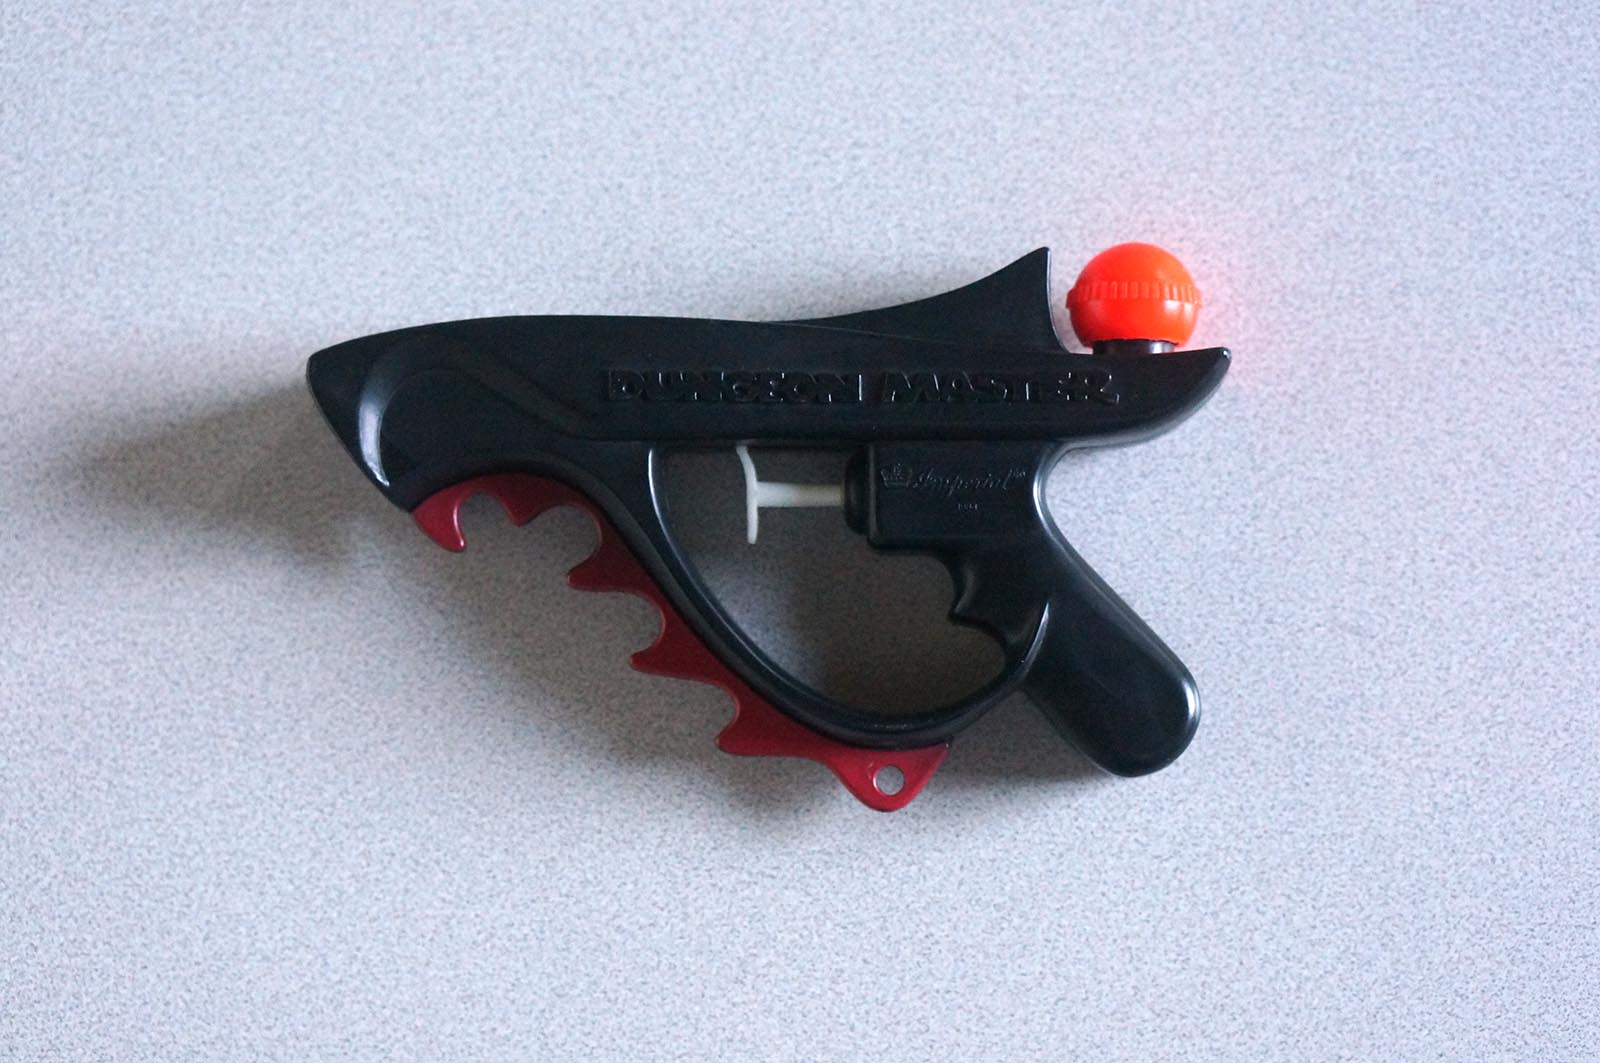 Imperial Toys Dungeon Master Squirt Gun